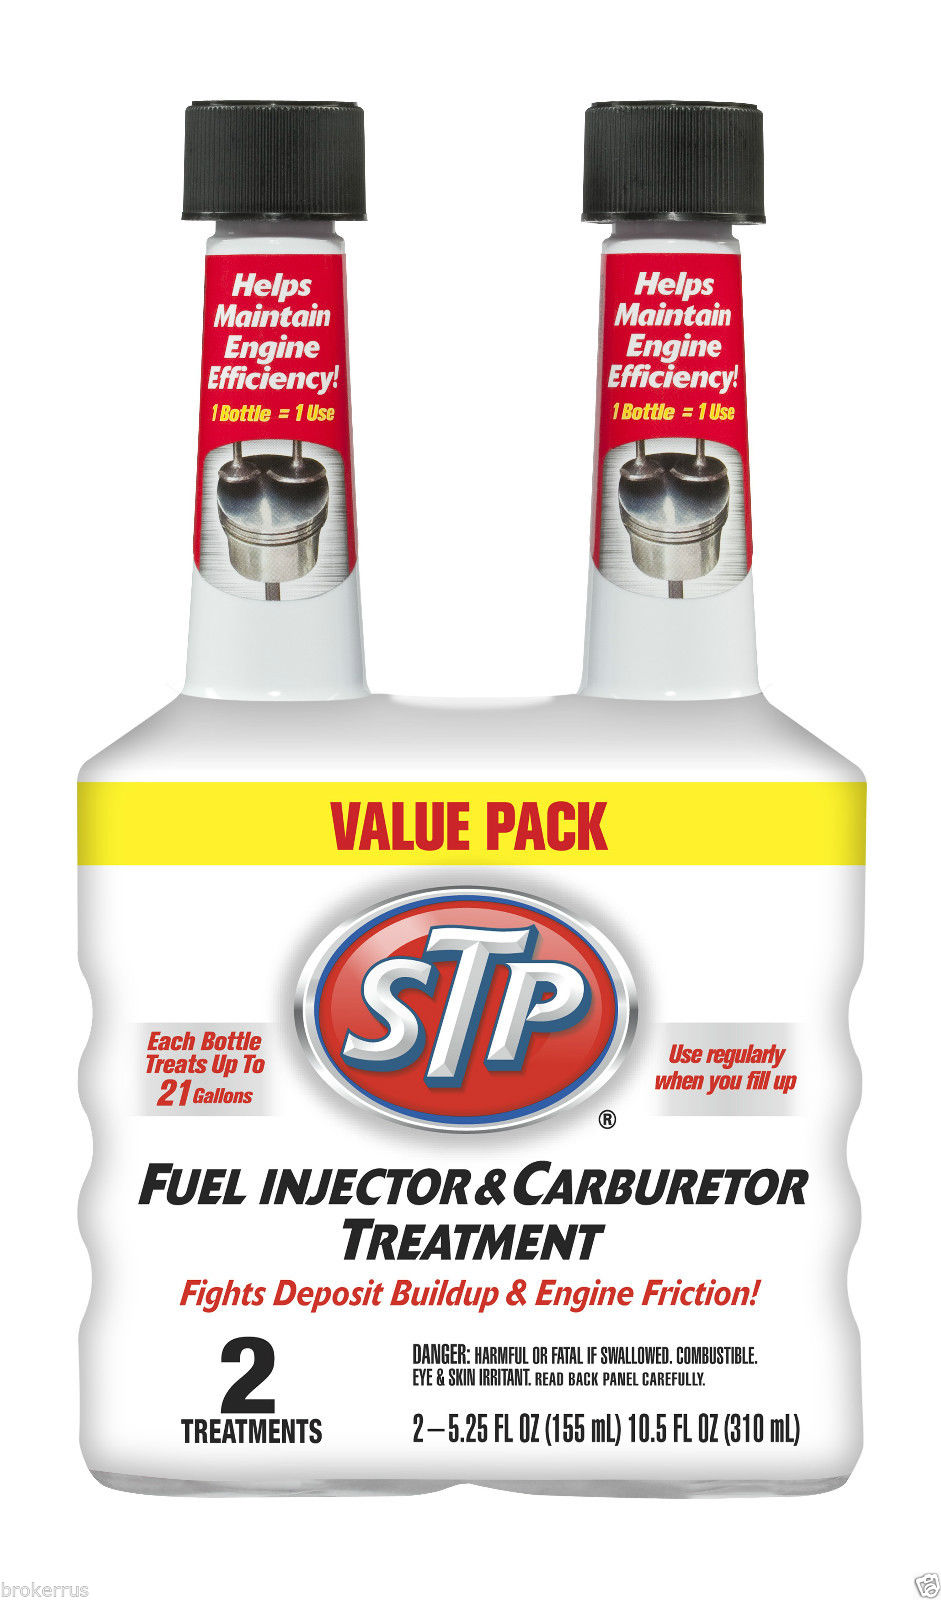 78610 Armor All/ STP Carburetor Cleaner Save Gas by Keeping Fuel